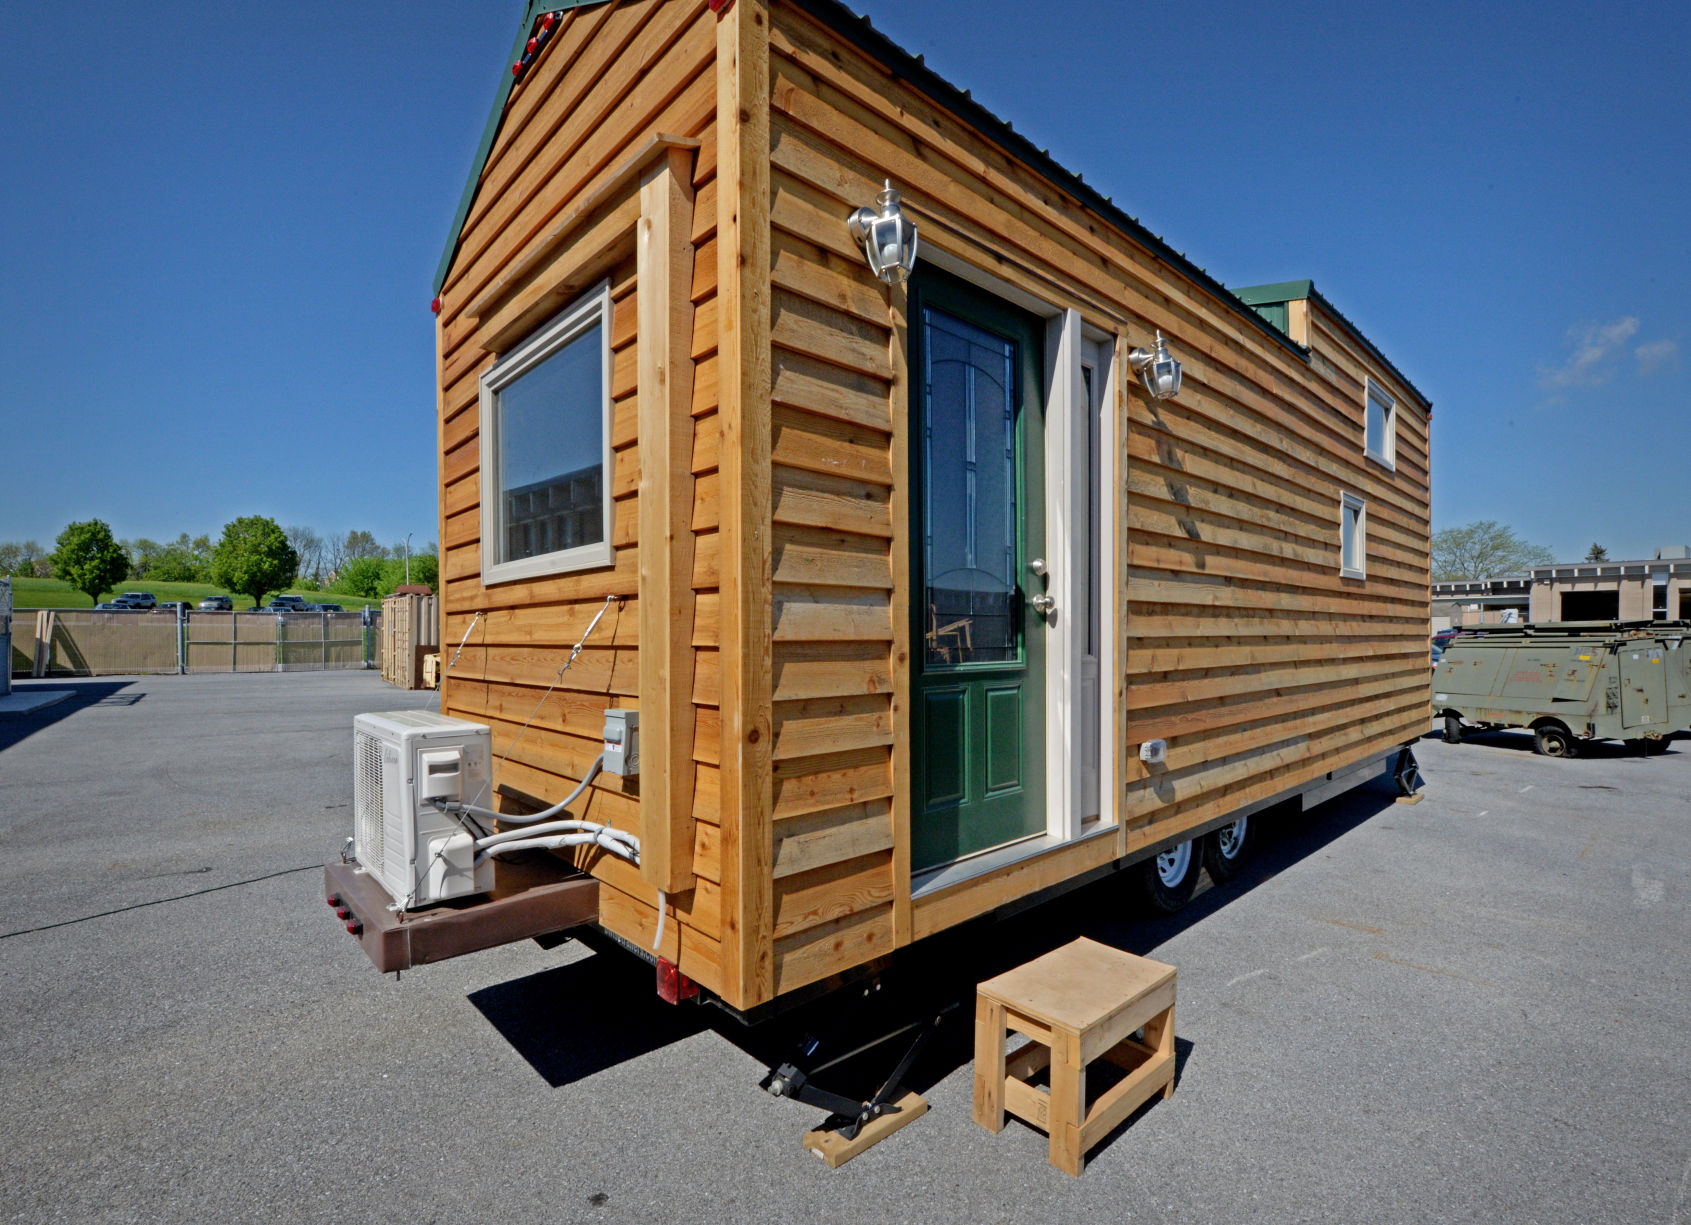 More Than 200 High School Students Build Tiny House To Be